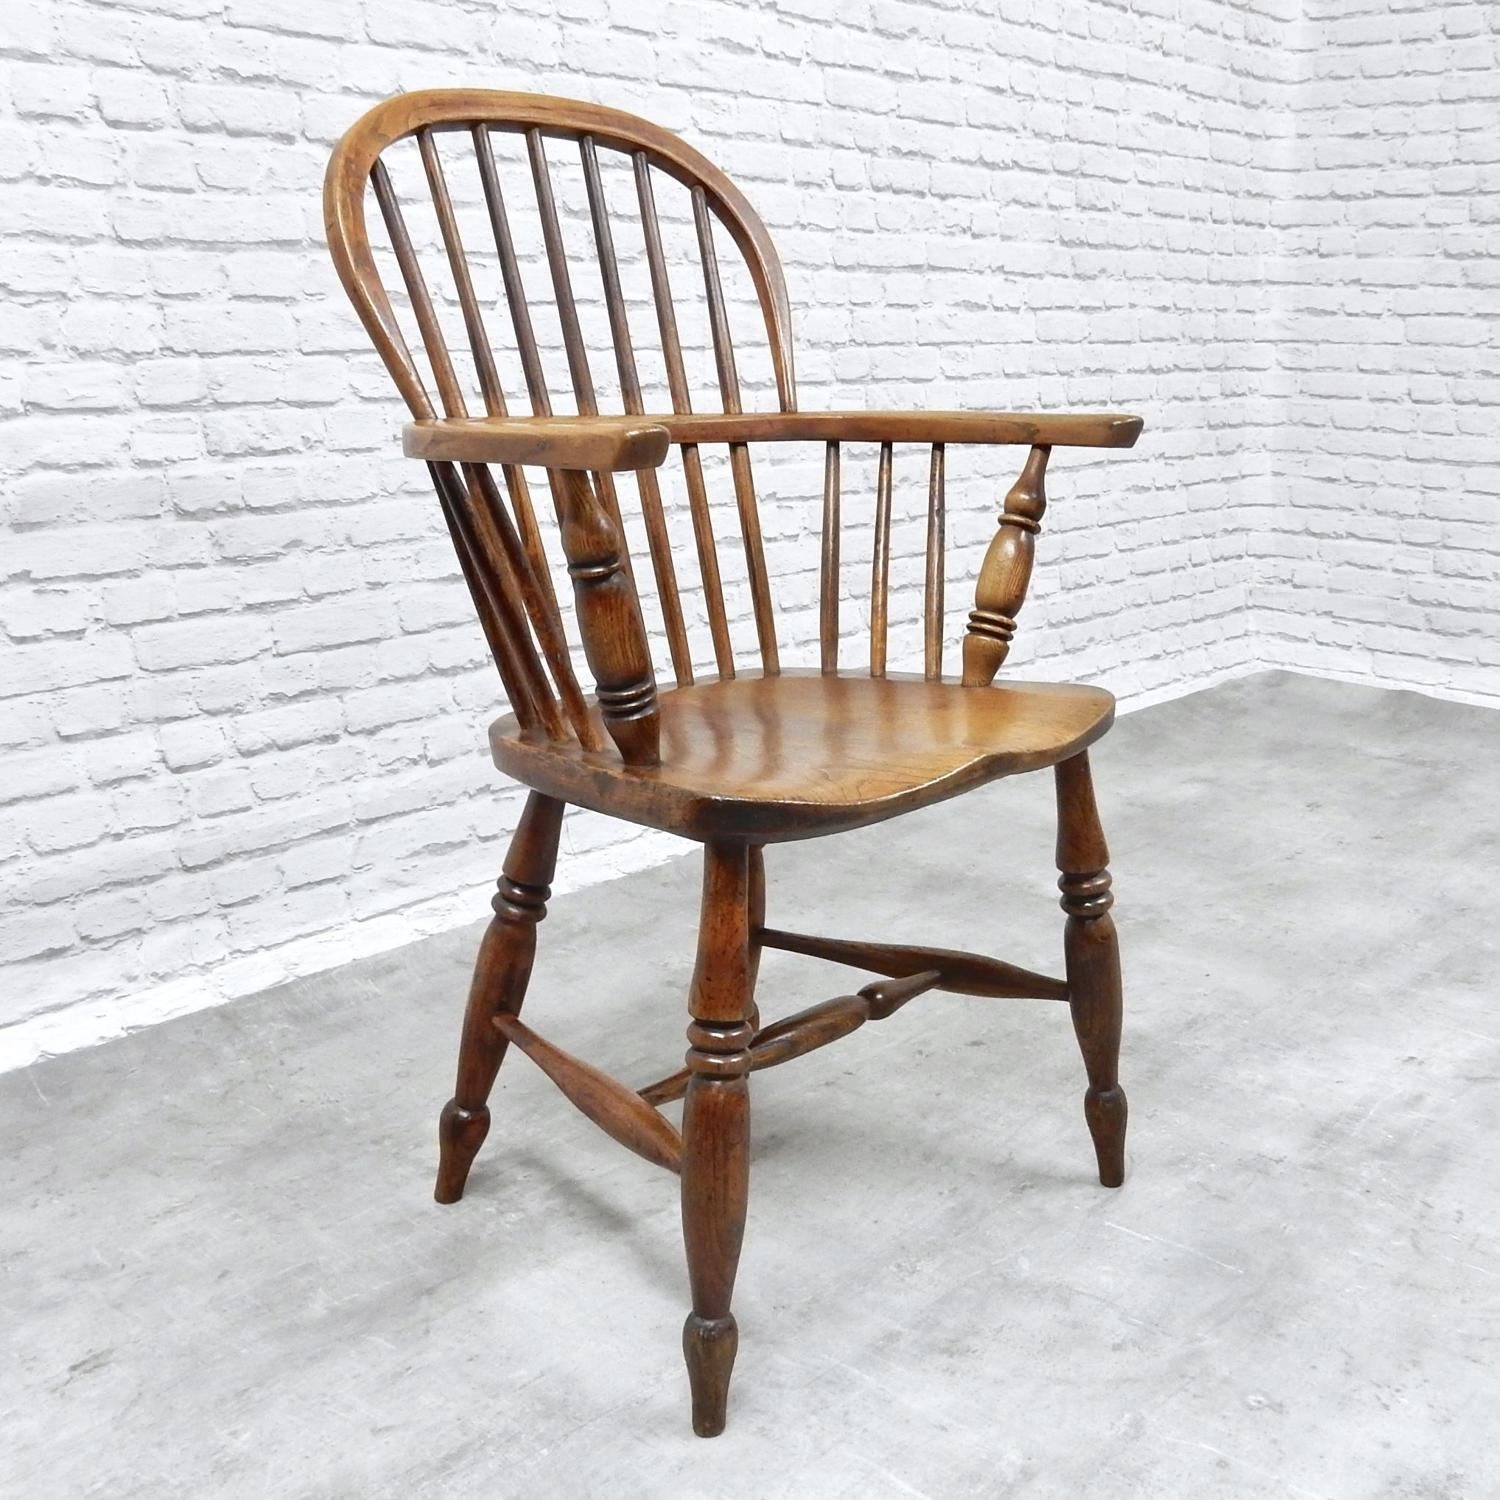 Antique Windsor Armchair, c.1840